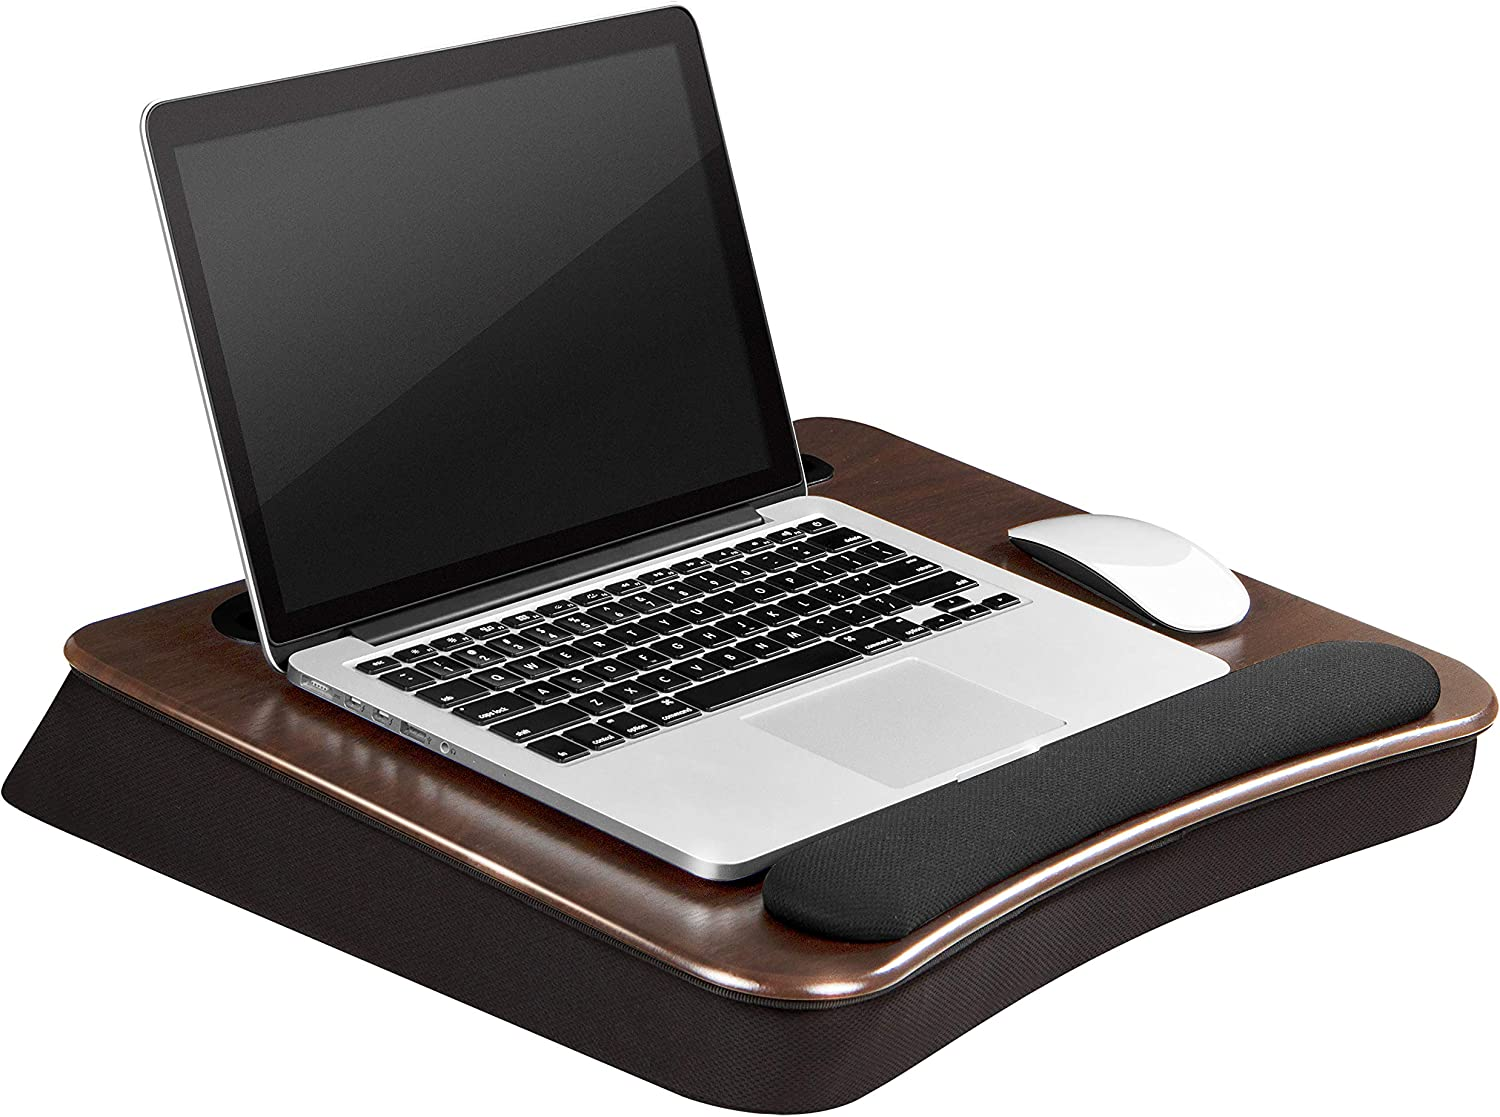 LapGear Smart-E Pro Lap Desk - Espresso - Fits up to 17.3 Inch laptops and Most Tablet Devices - Style No. 91375